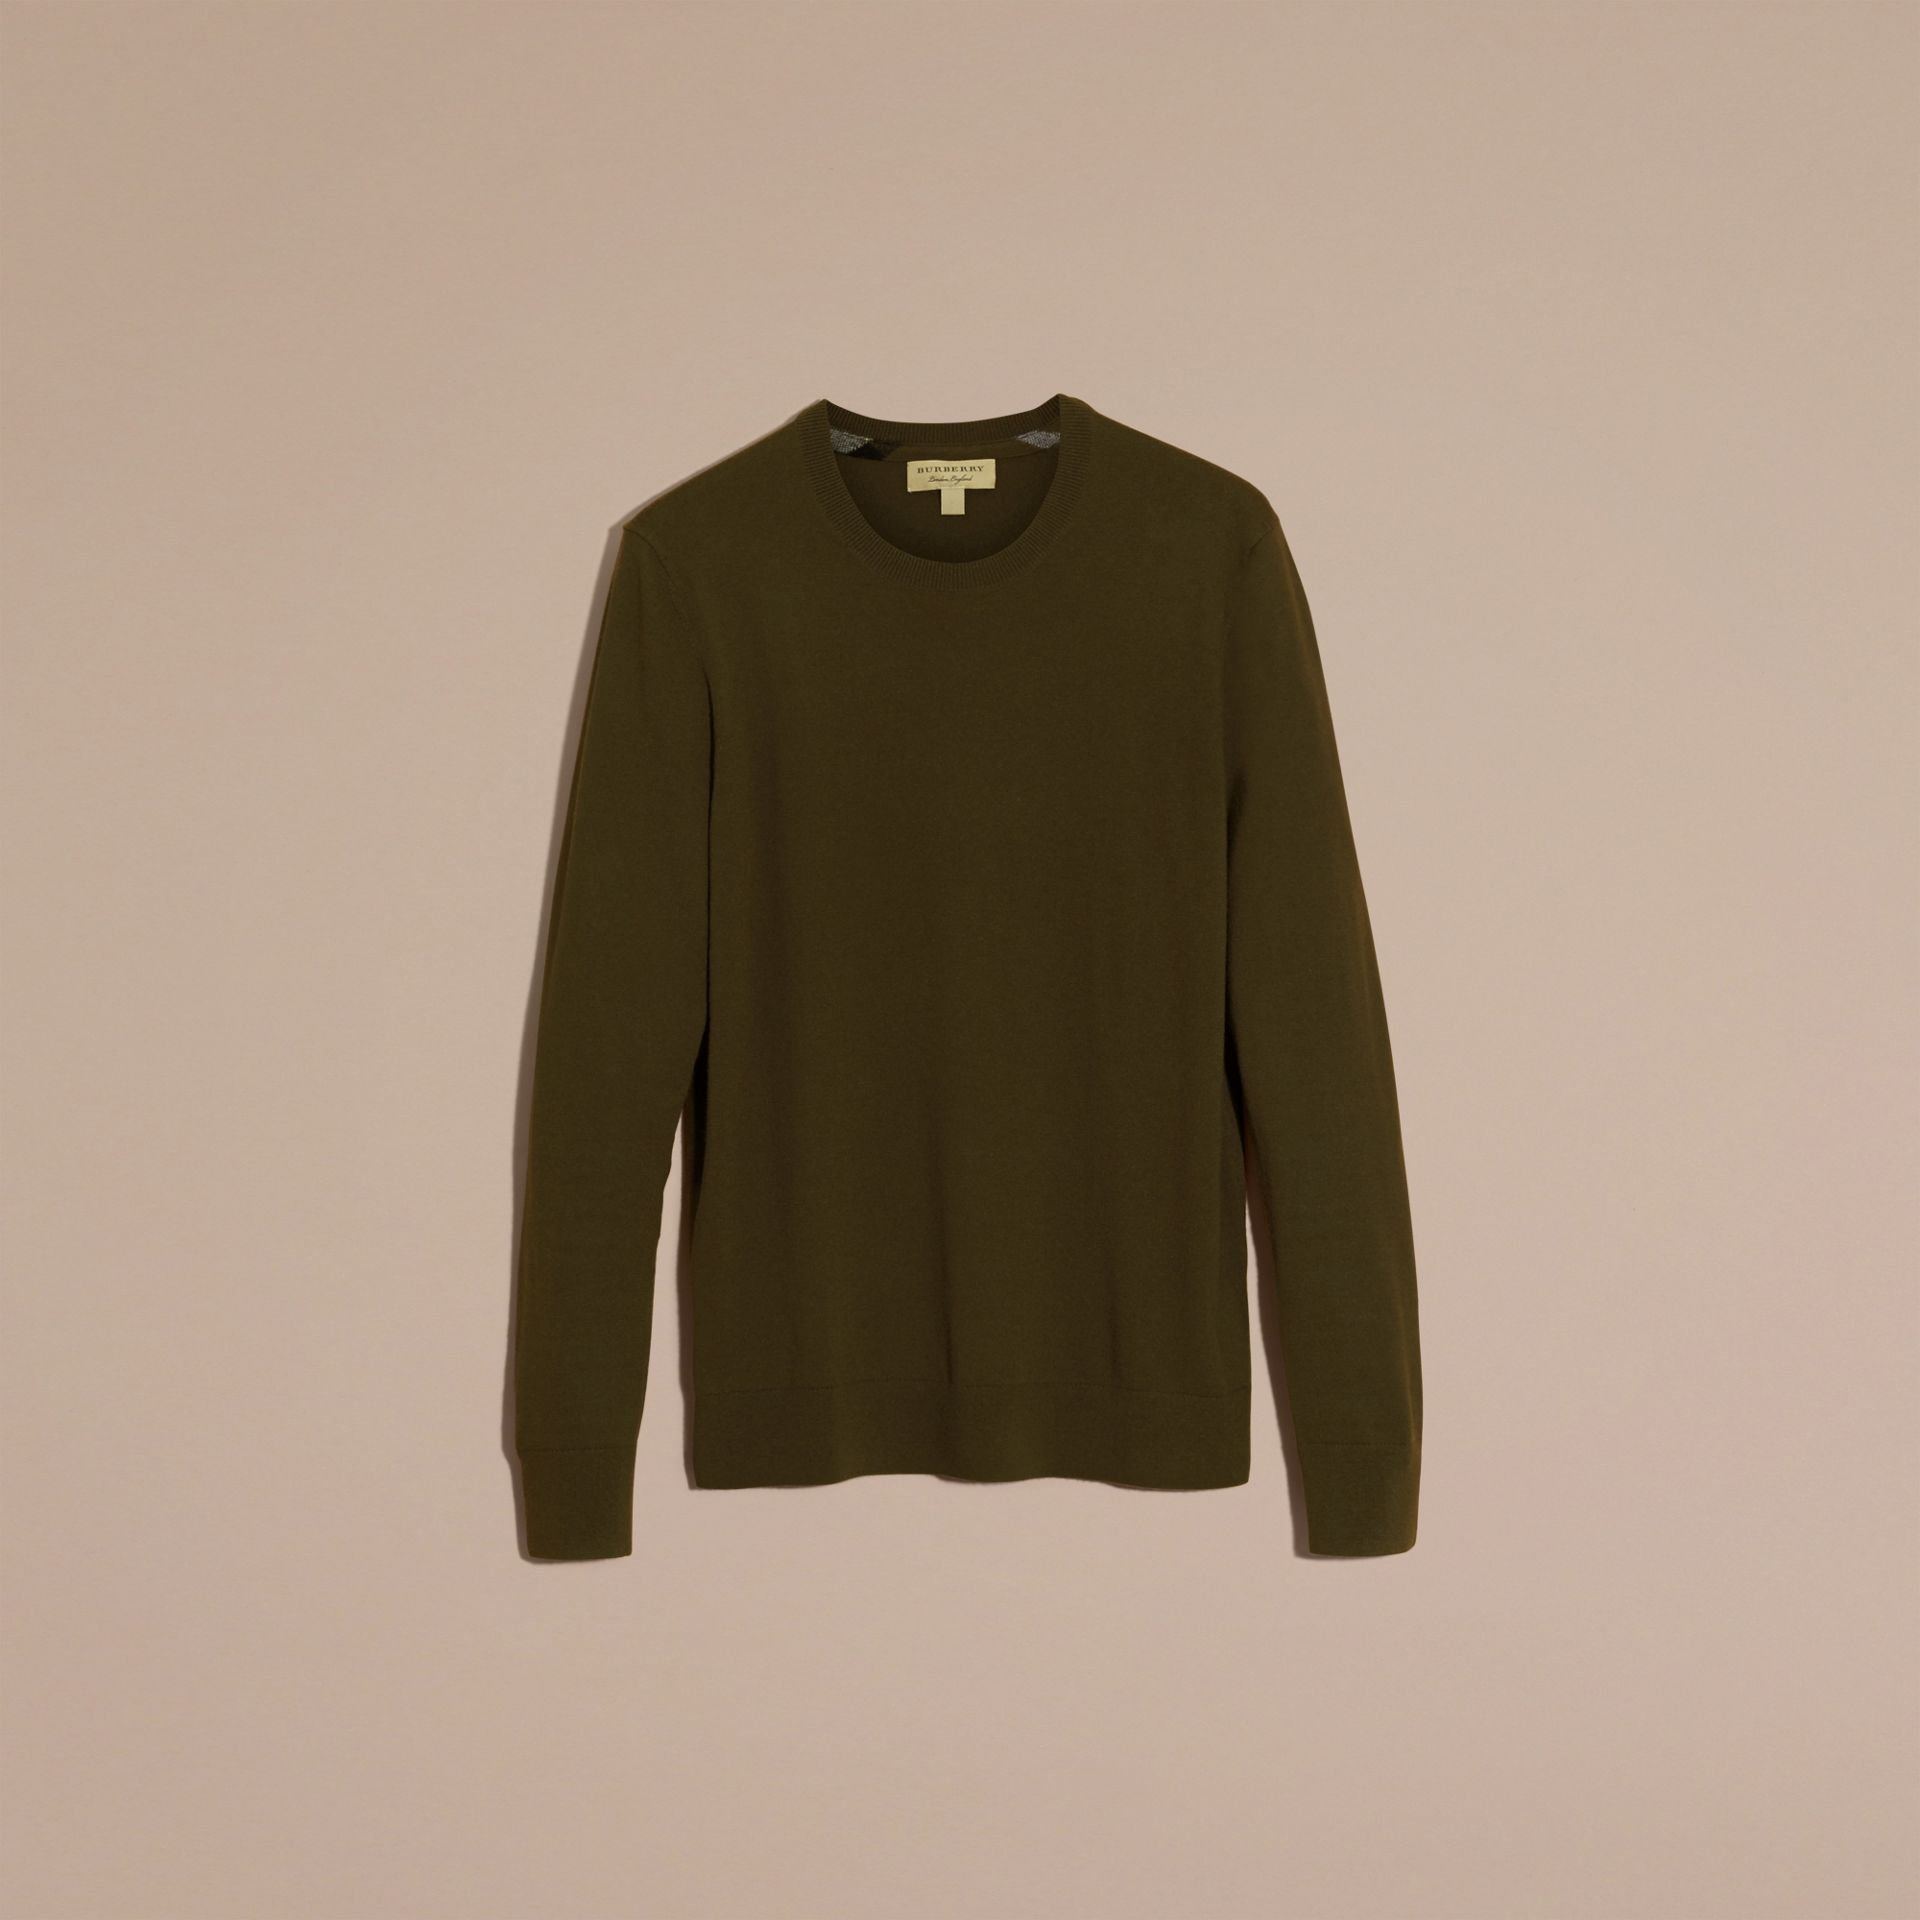 Military olive Lightweight Crew Neck Cashmere Sweater with Check Trim Military Olive - gallery image 4